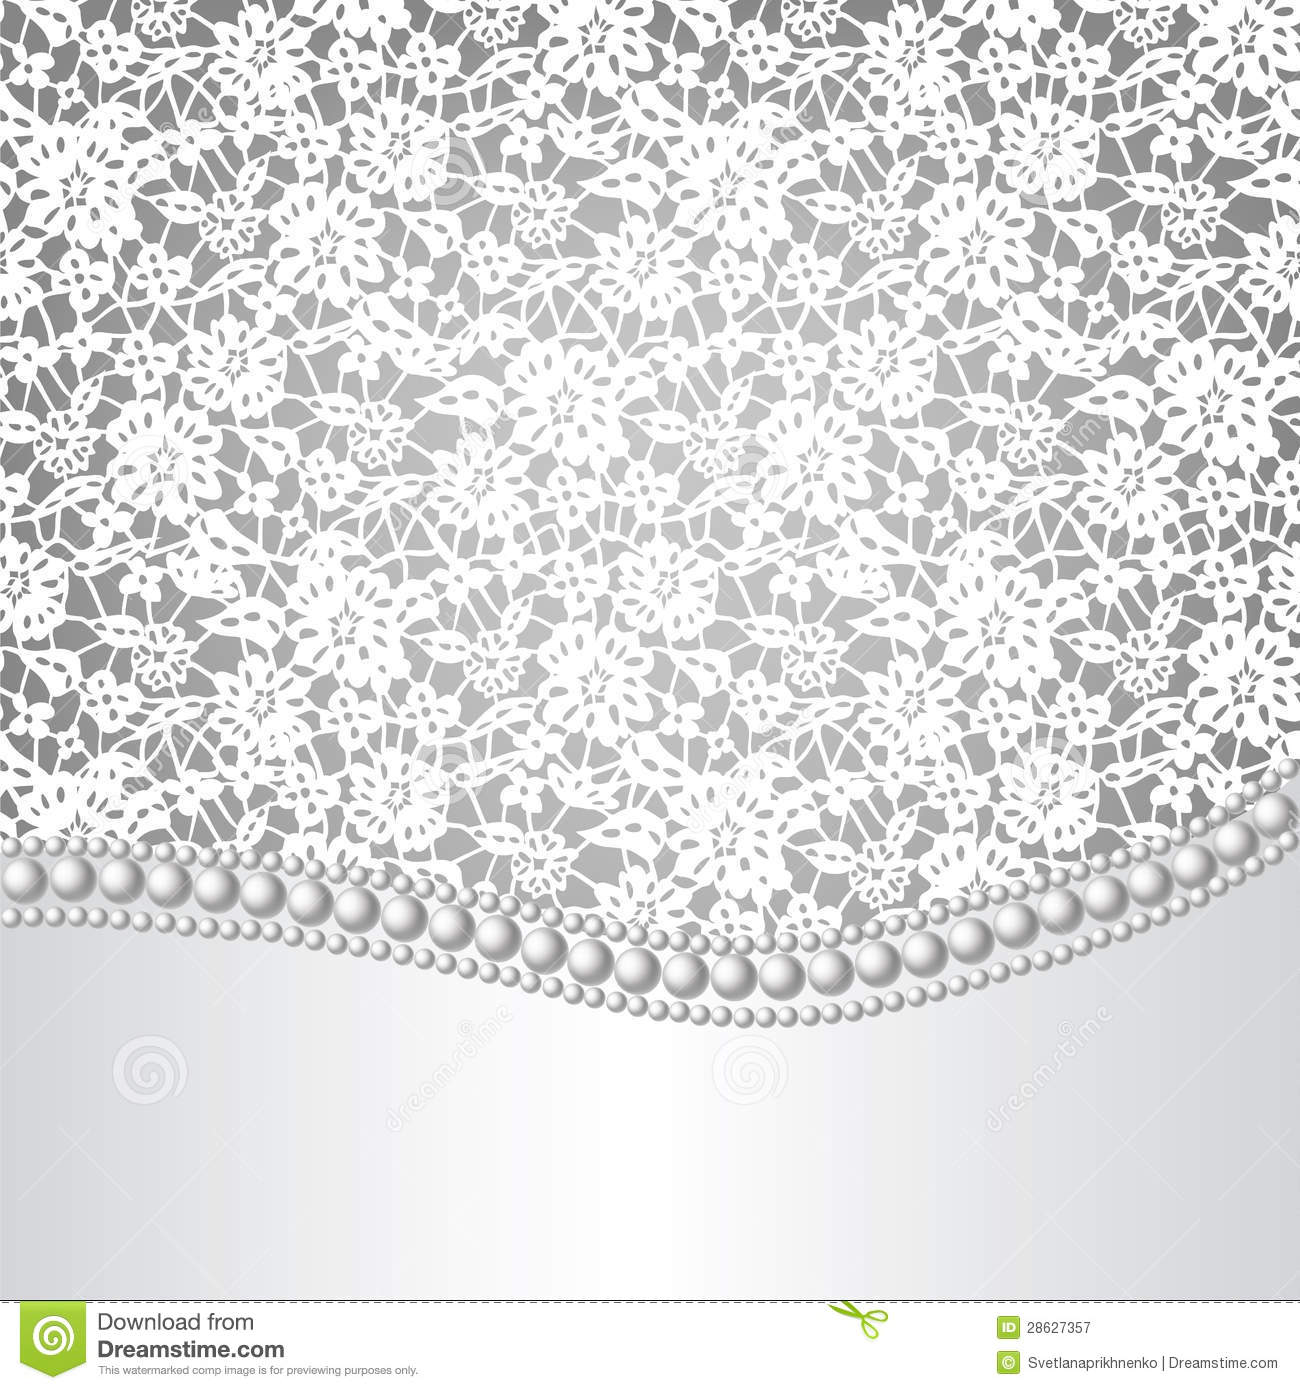 Template for wedding invitation or greeting card with lace background